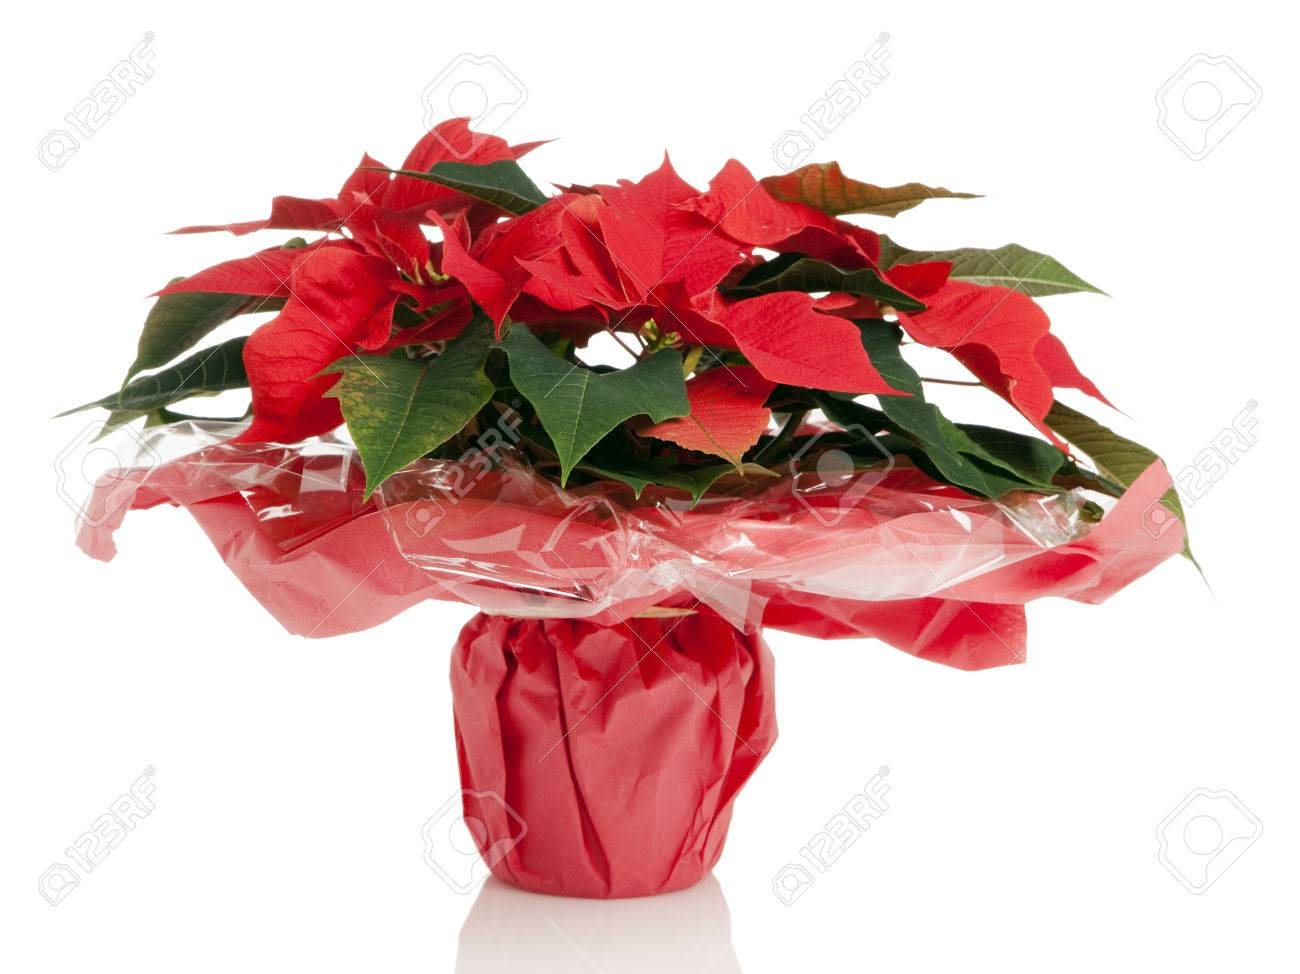 Poinsettia Plant Wrapped In Red Paper And Foil Isolated On White